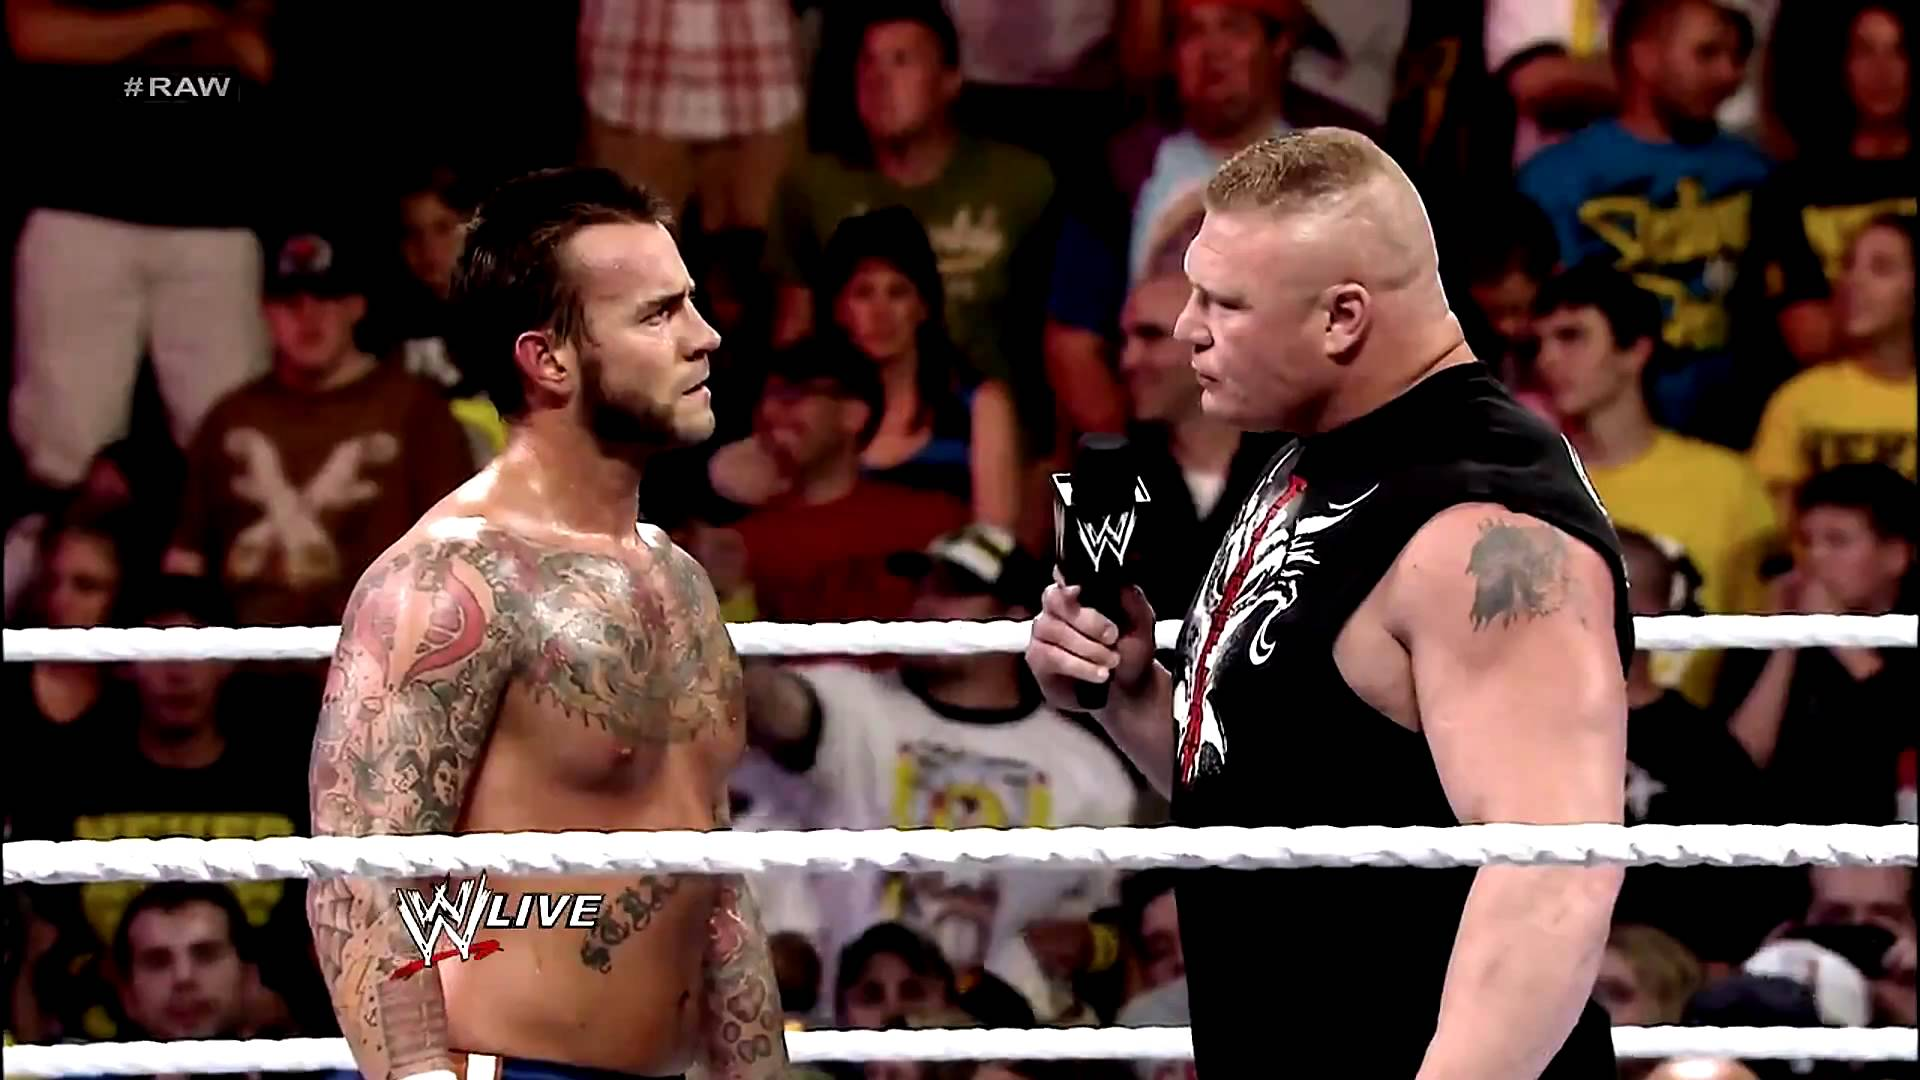 CM Punk vs Brock Lesnar – An All Time Classic